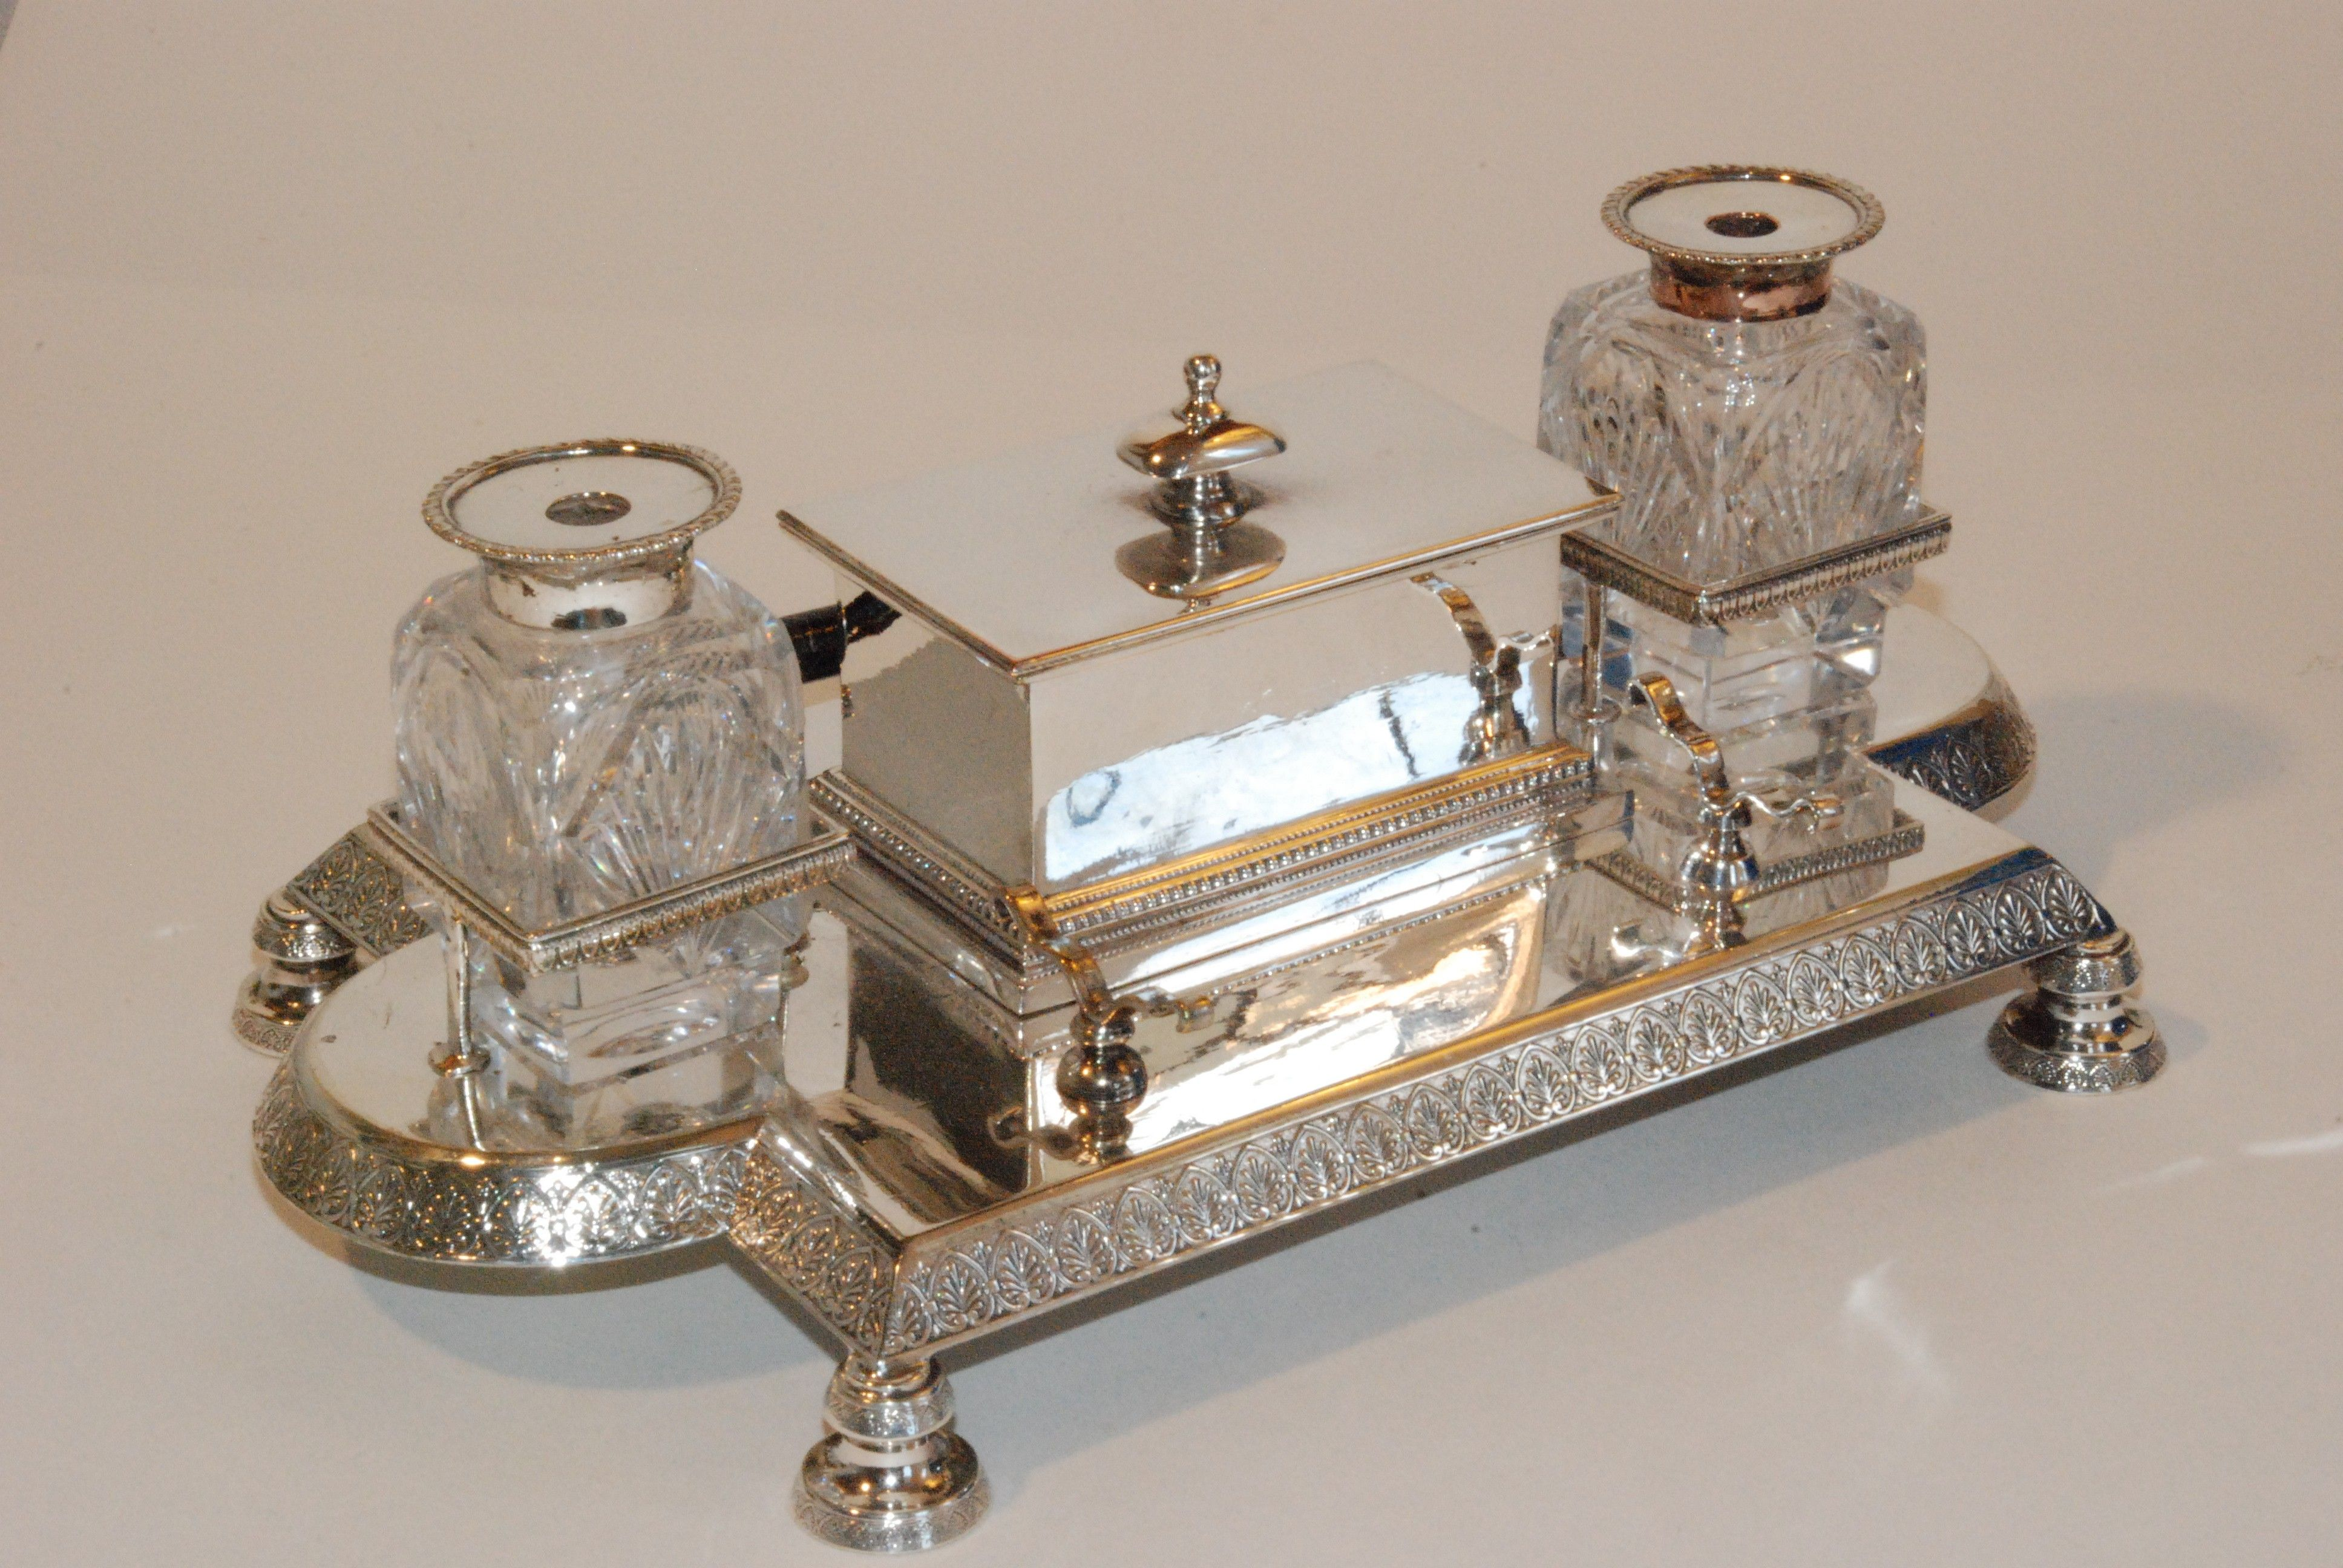 Dating antique inkwells